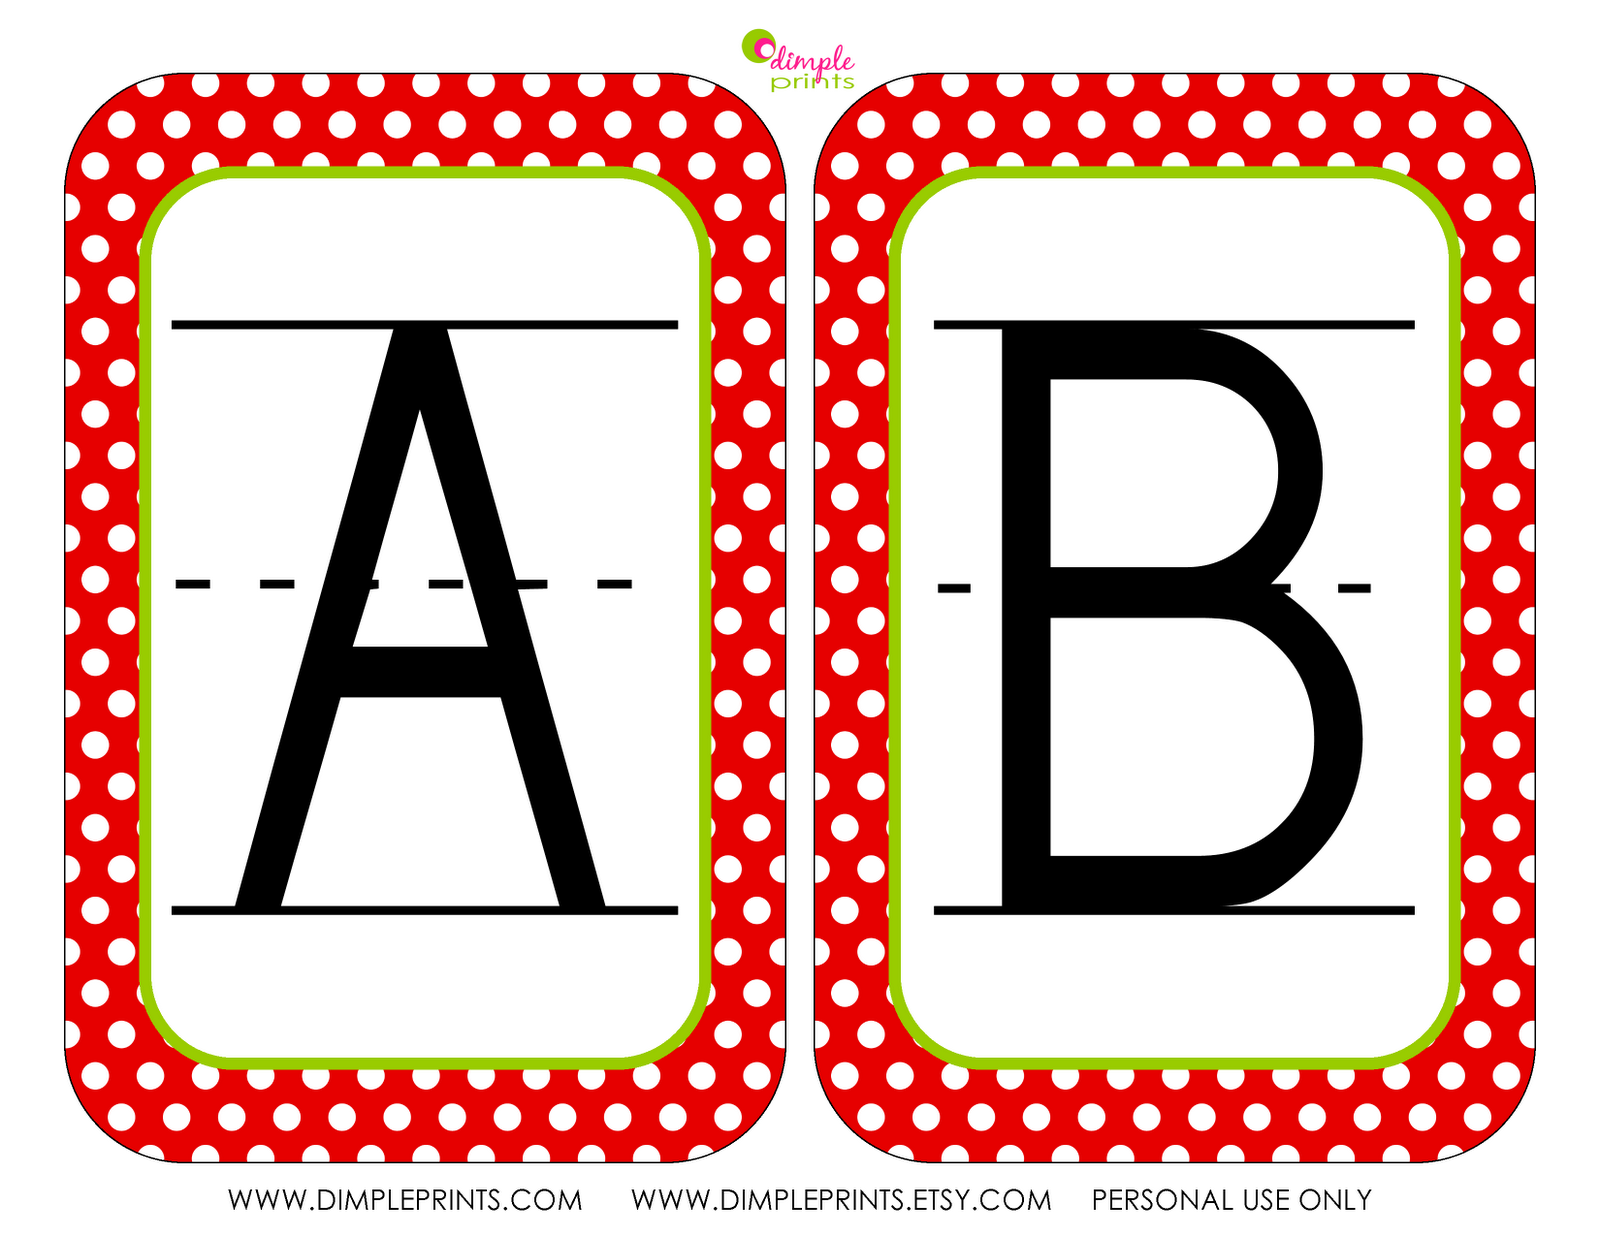 Dimple Prints: FREE DOWNLOAD: Back to School Party & Teacher Supplies